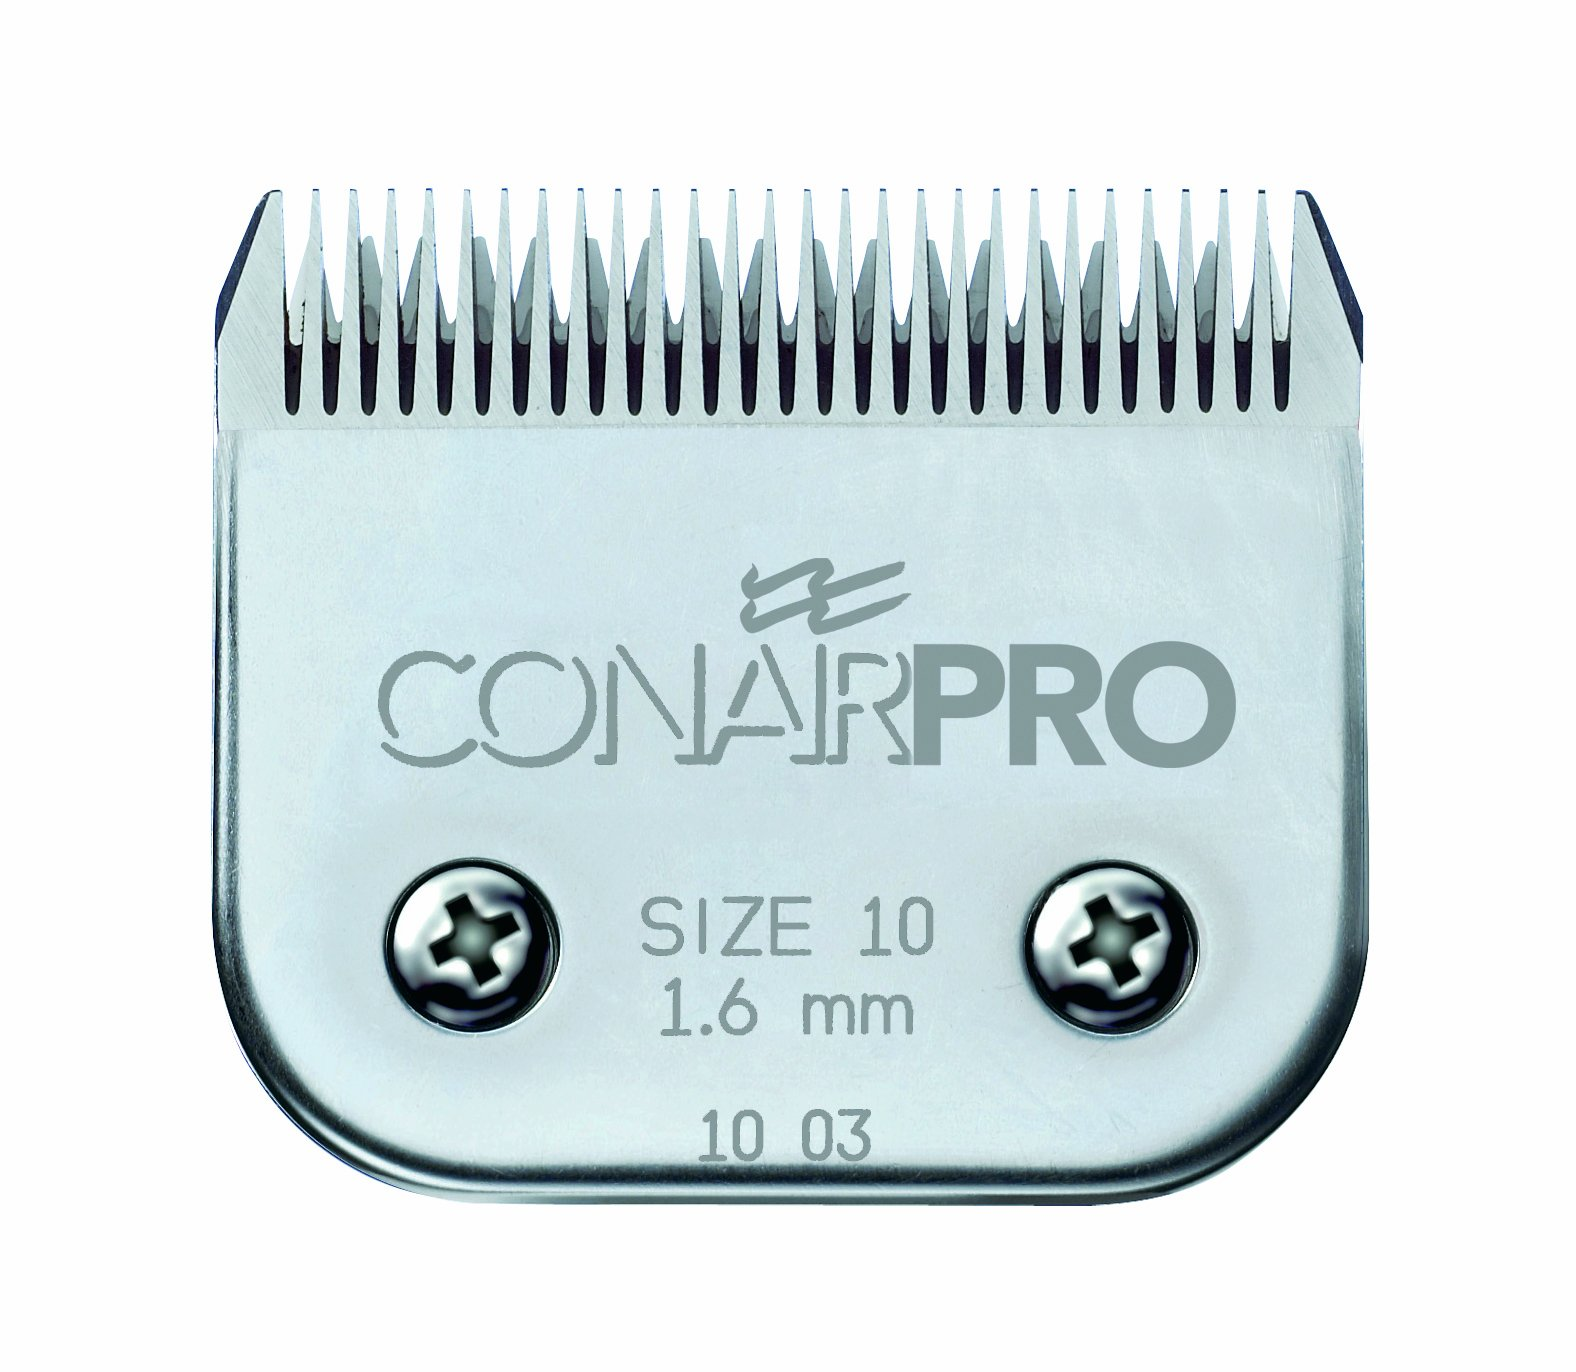 Conair Pro Pet Clipper Size 10 Ceramic Replacement Blade, 1.6mm